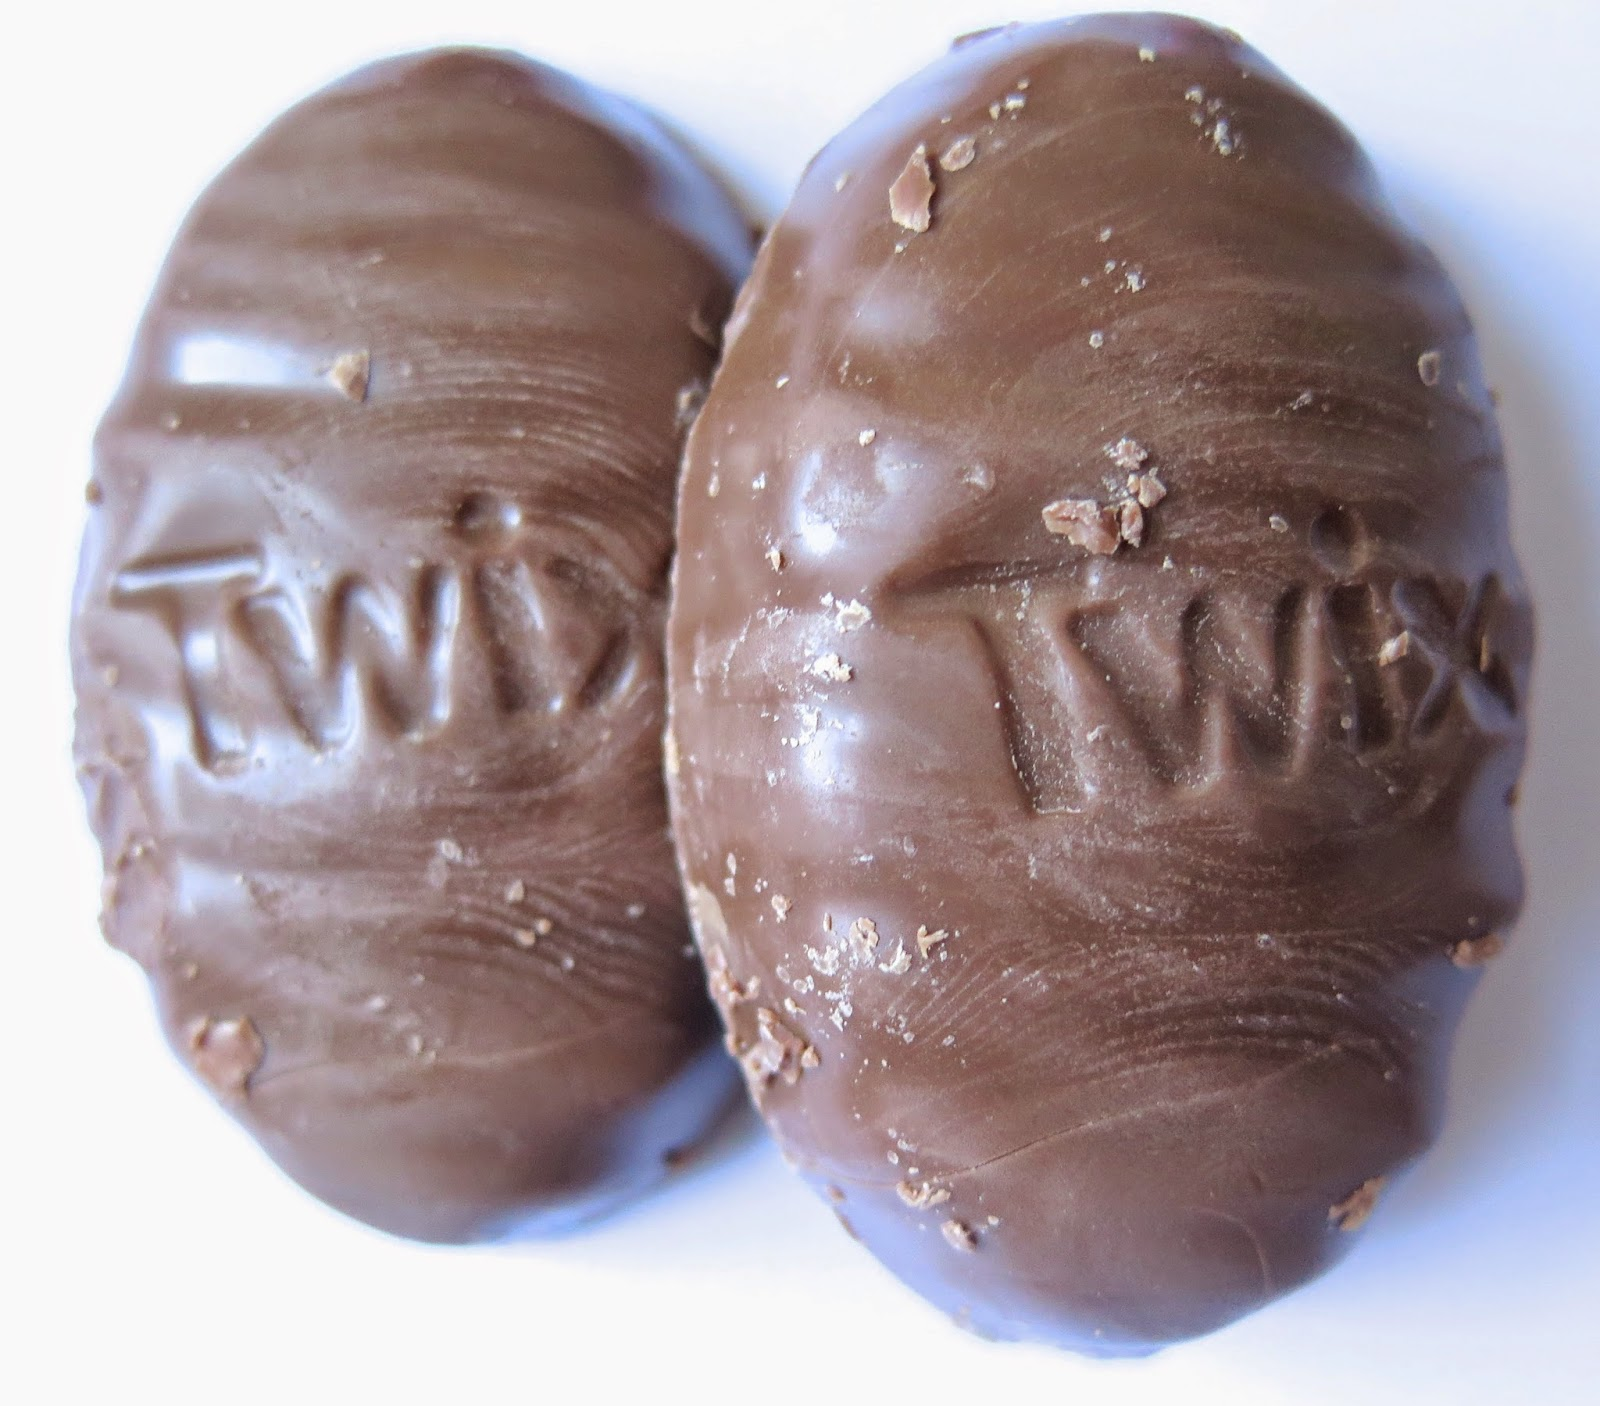 obsessive sweets post easter snapshot twix easter eggs nothing new but the festive shape